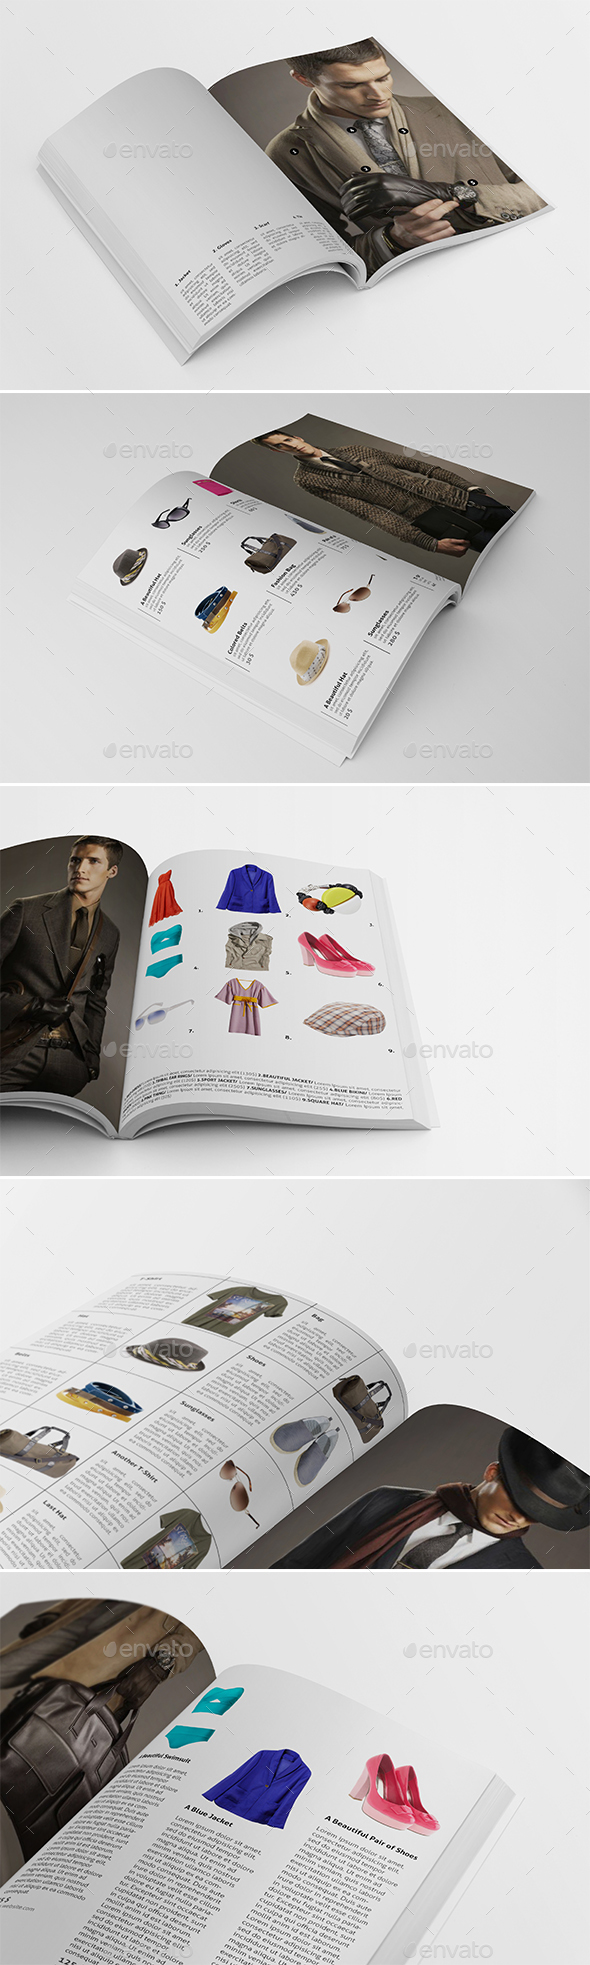 5 Different Products Showcase Layouts - Catalogs Brochures